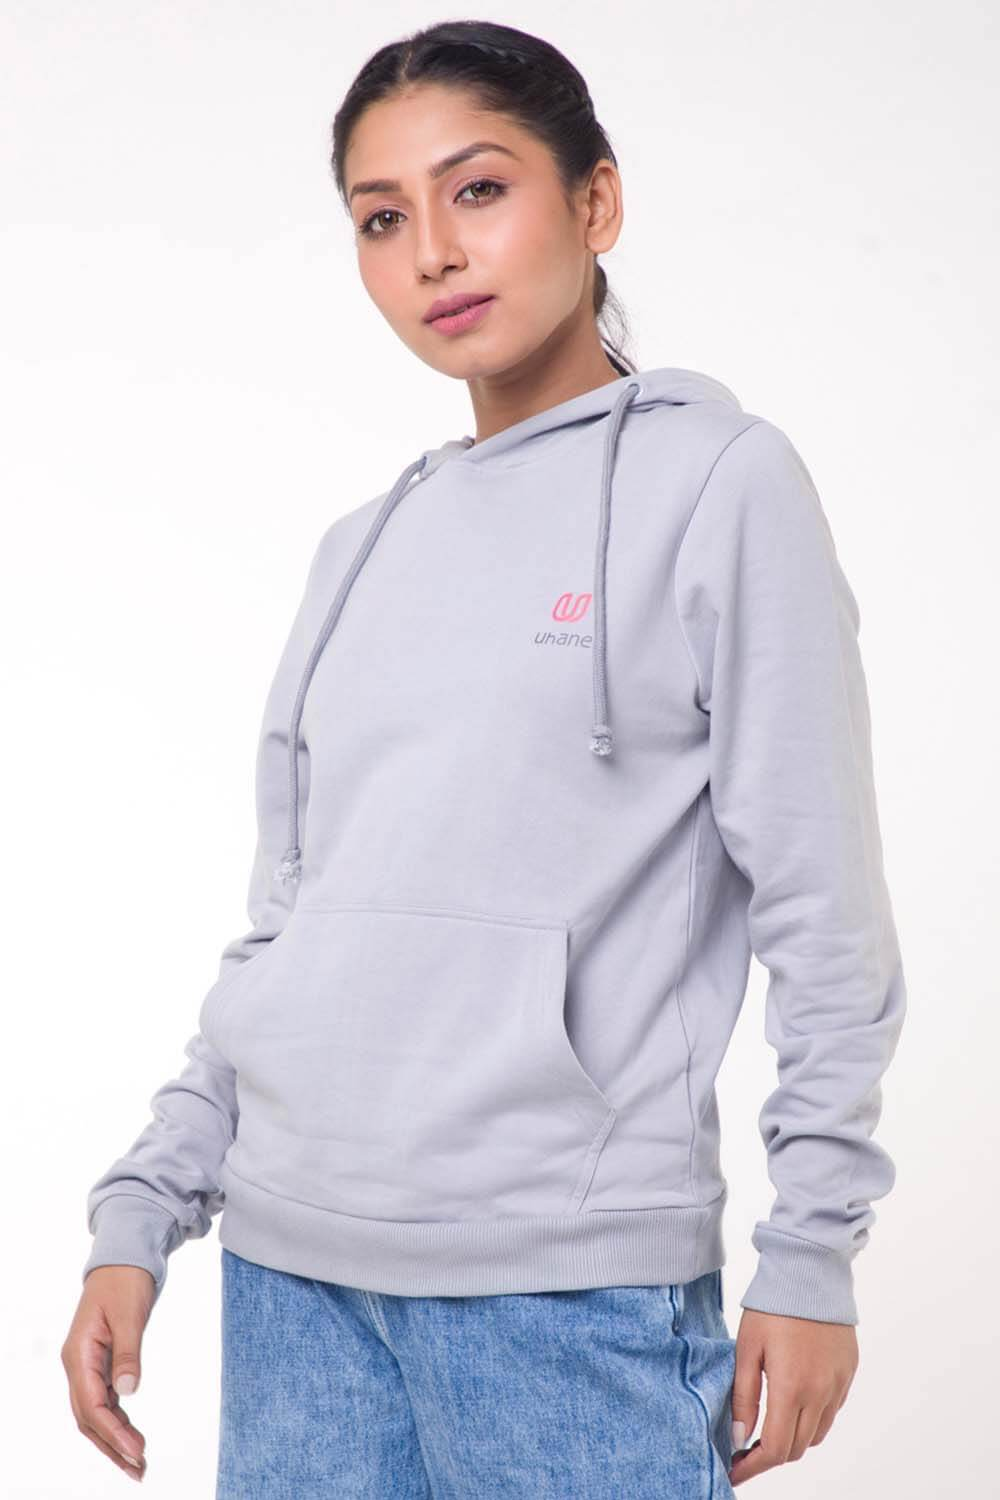 Women's Athleisure and Work-Out Purple Melange Loose-Fit Hoodie